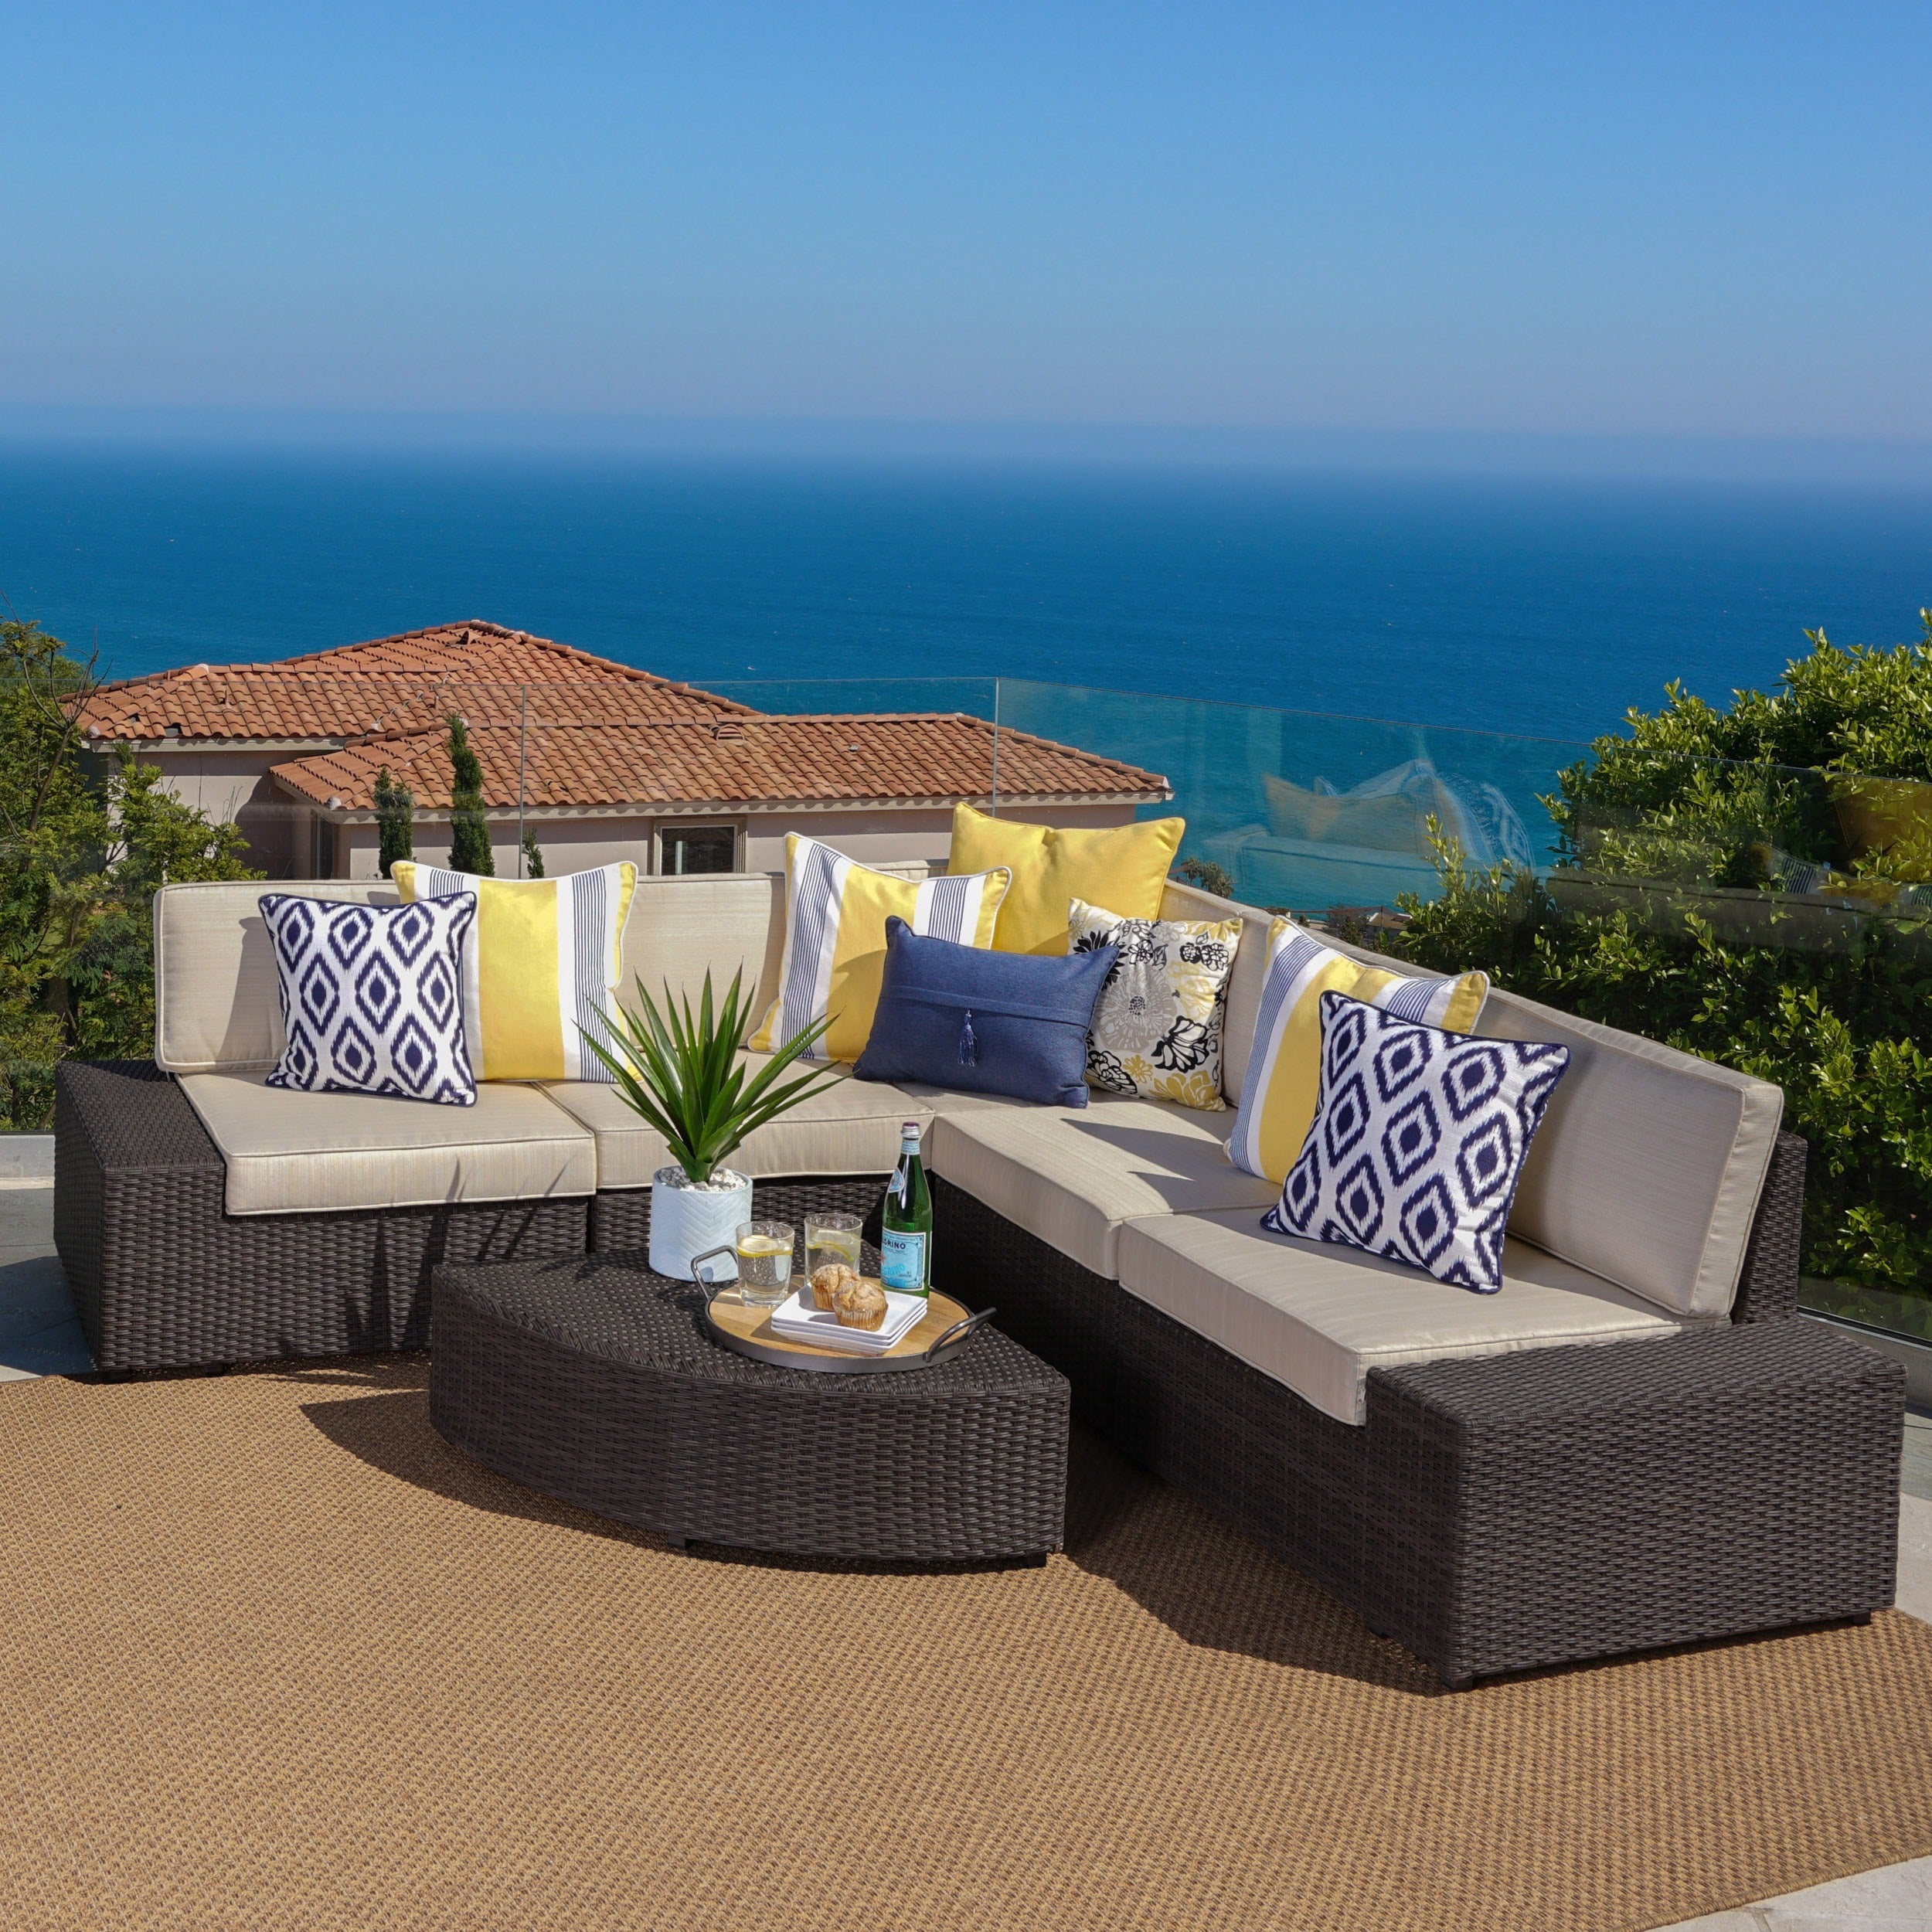 Shop santa cruz outdoor 6 piece wicker sofa set by christopher knight home free shipping on orders over 45 overstock com 6486689